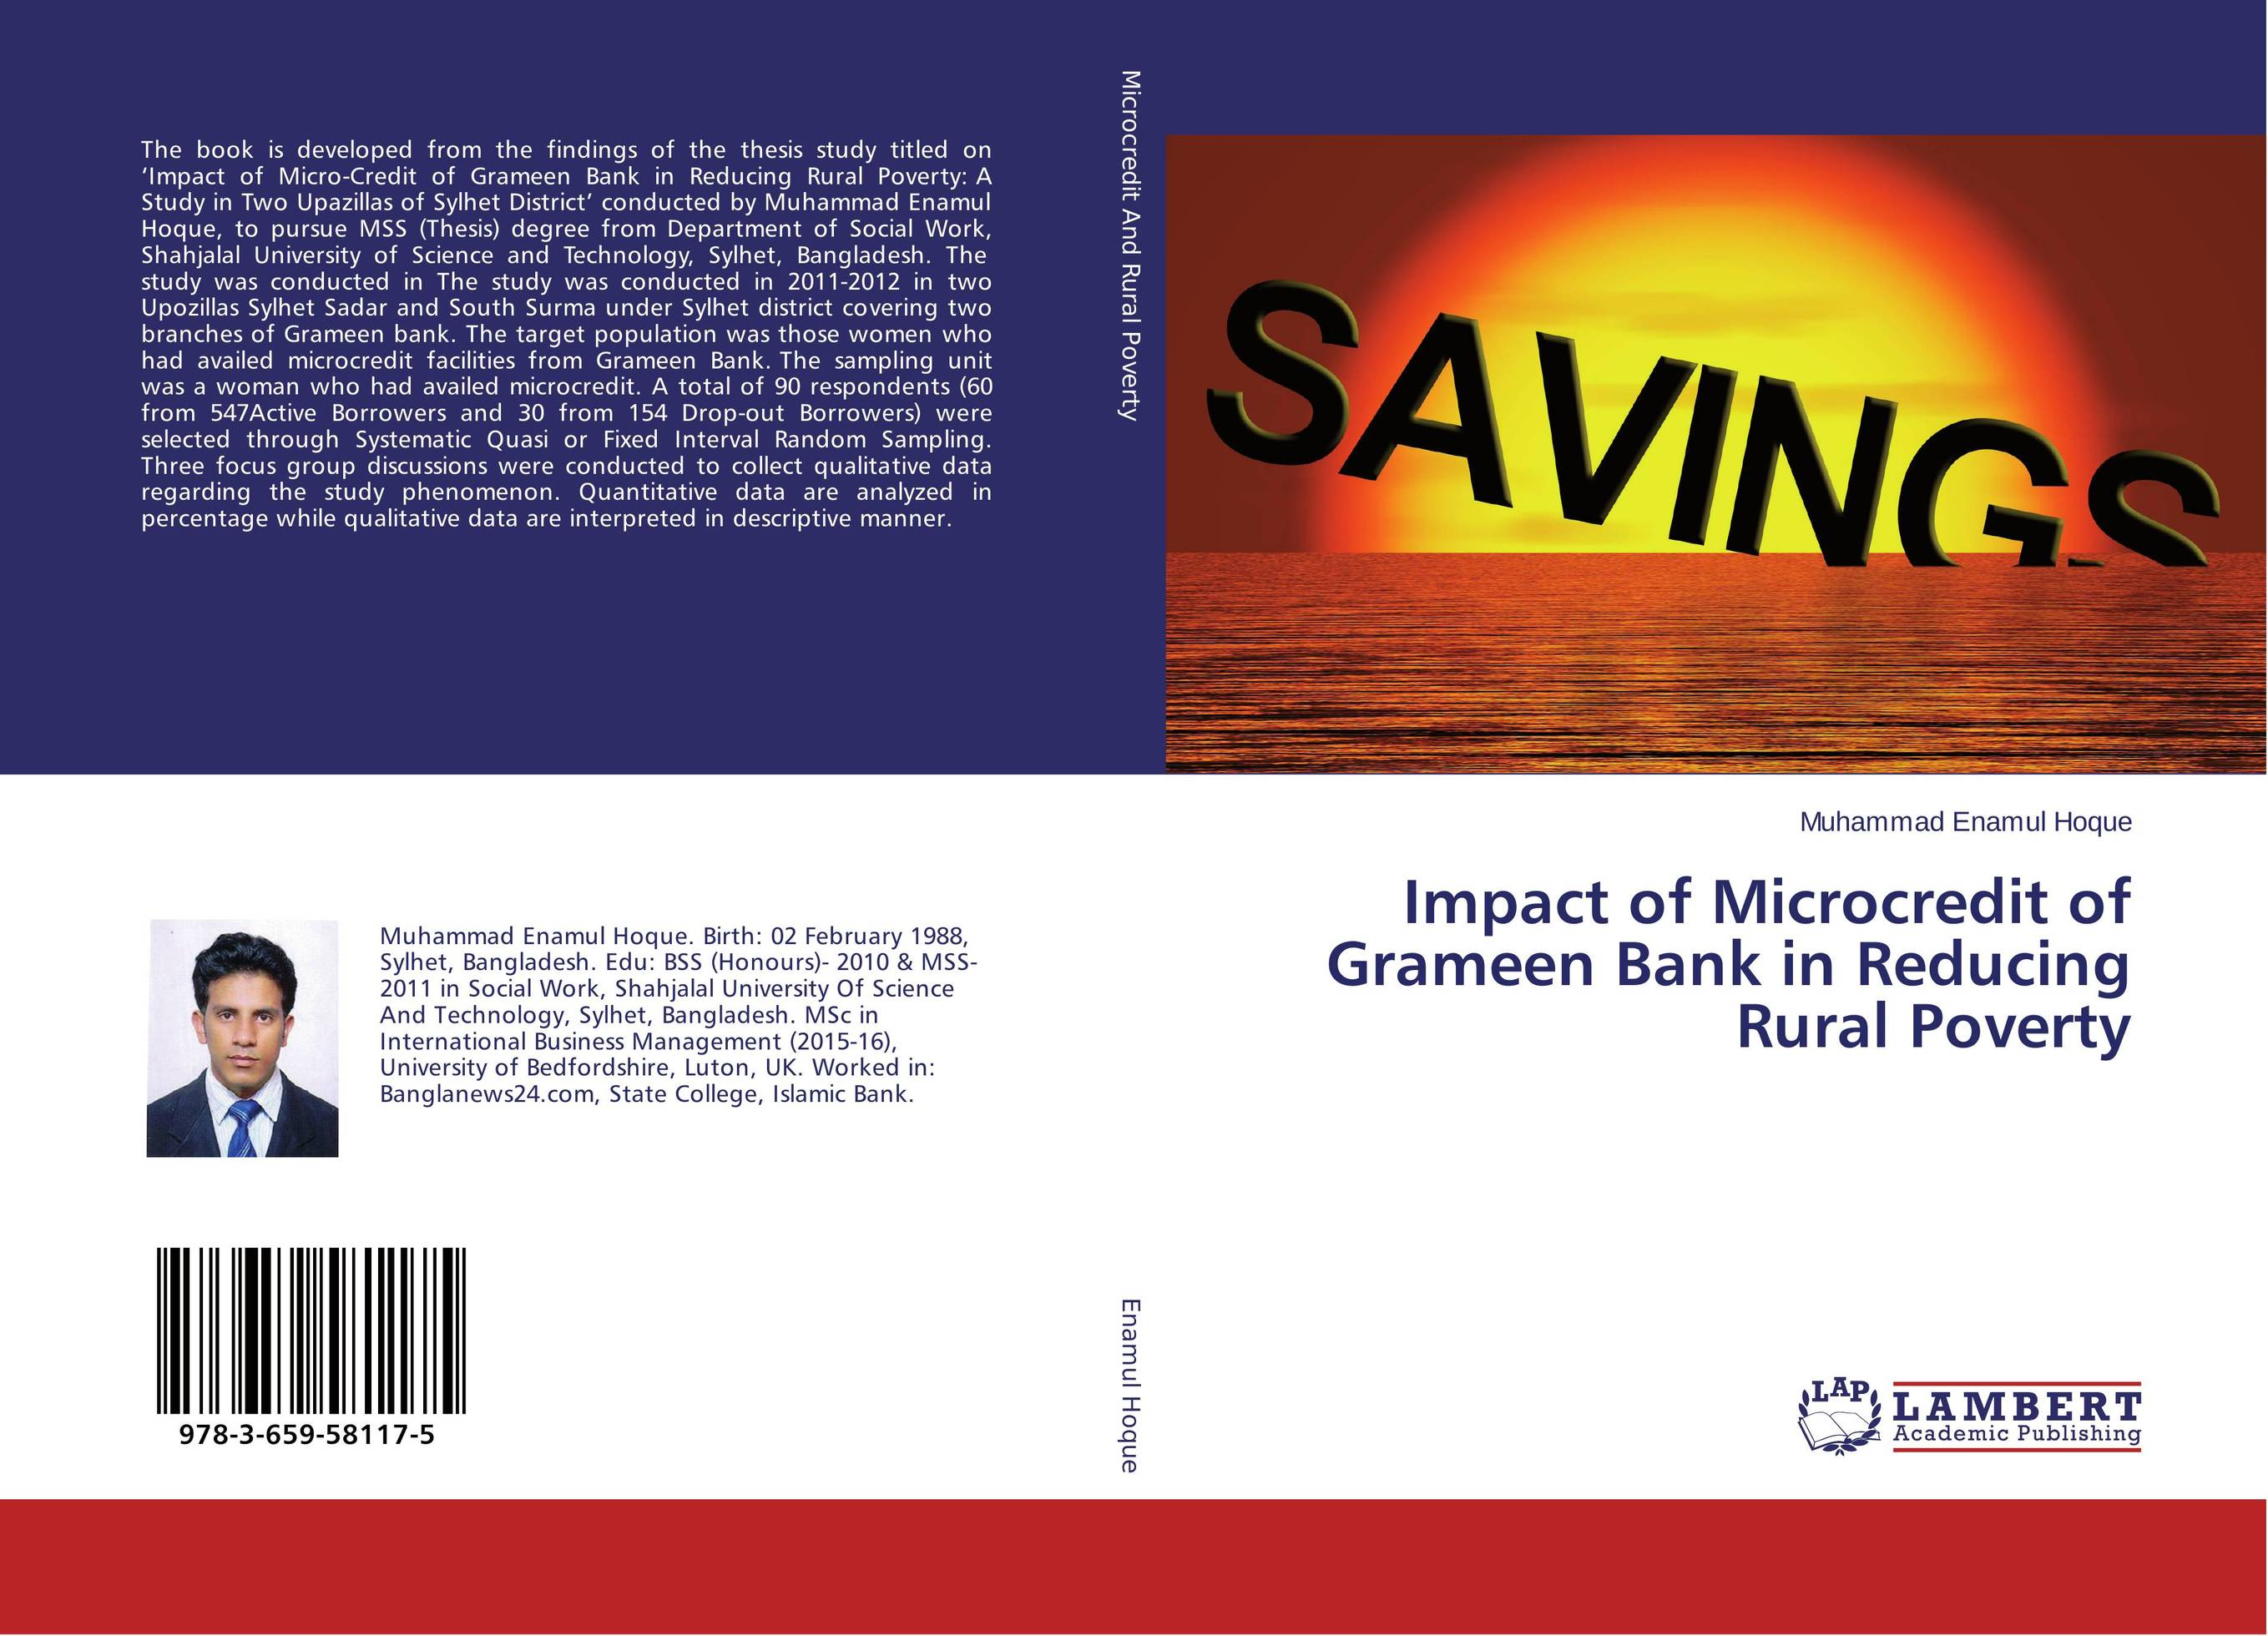 Impact of Microcredit of Grameen Bank in Reducing Rural Poverty